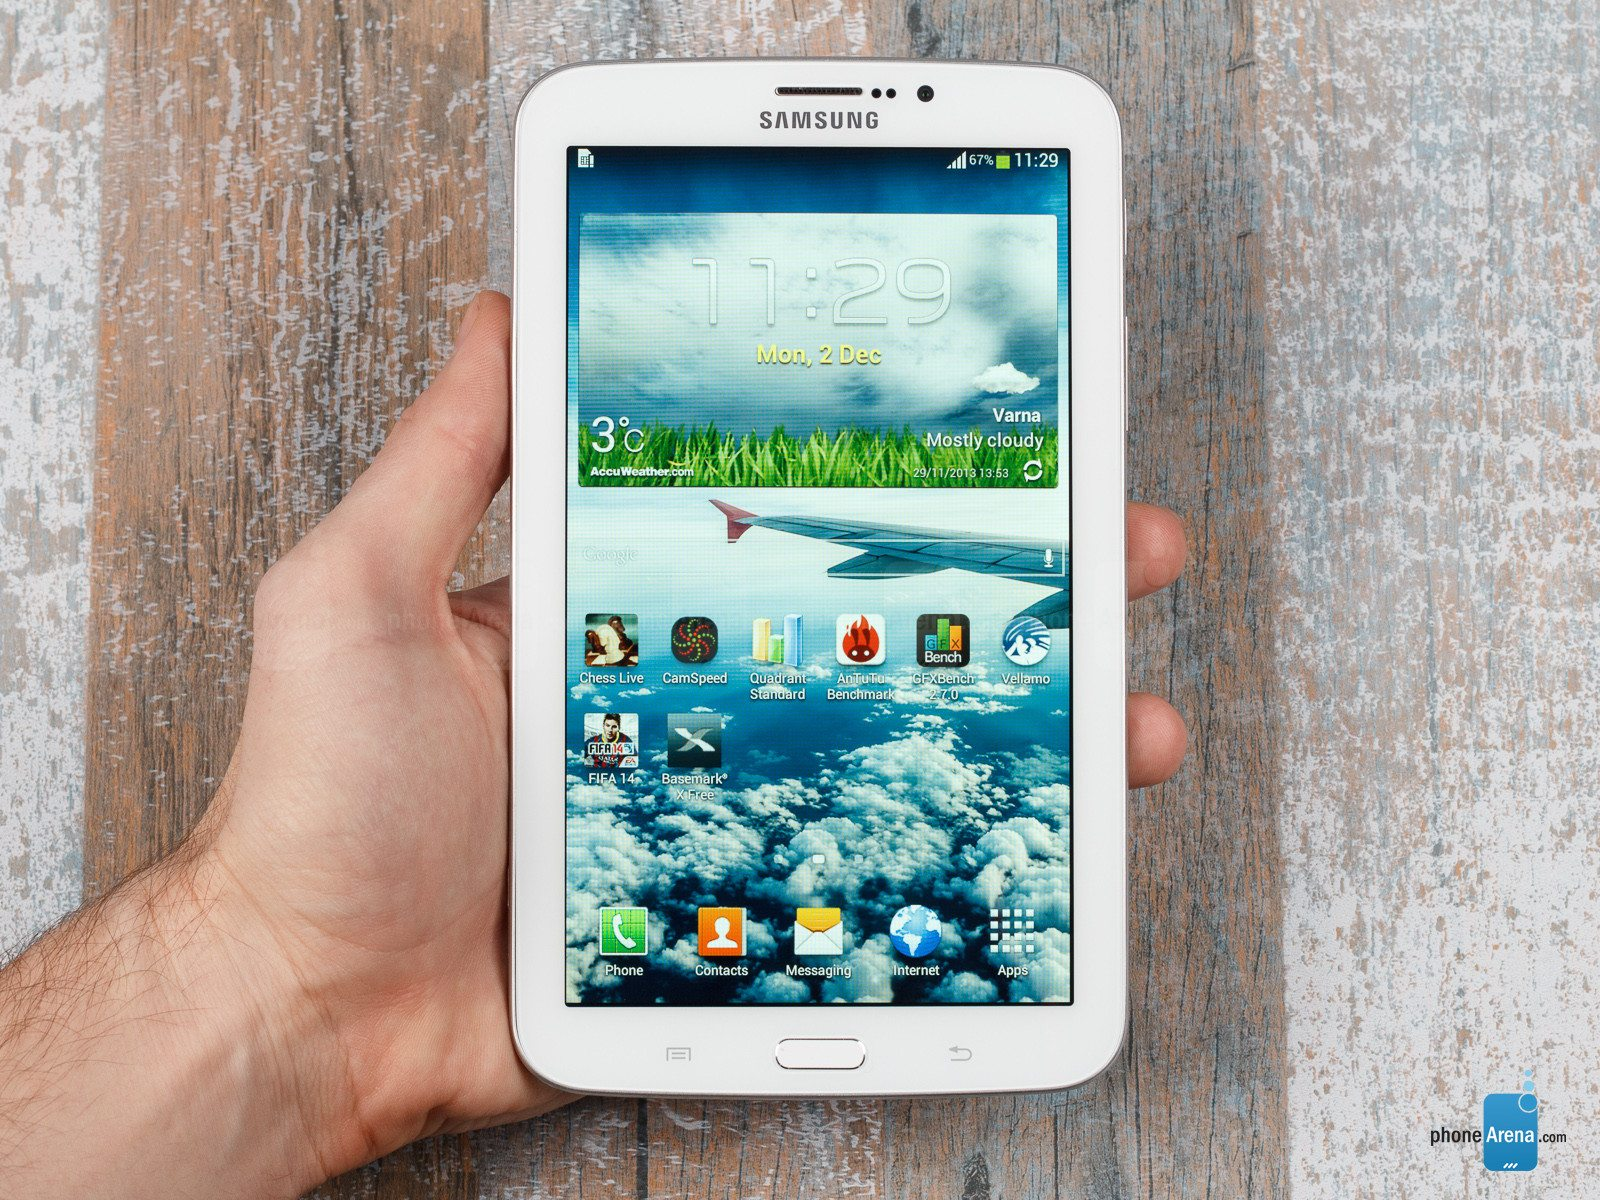 Install CWM Recovery on Samsung Galaxy Pocket GT-S5300